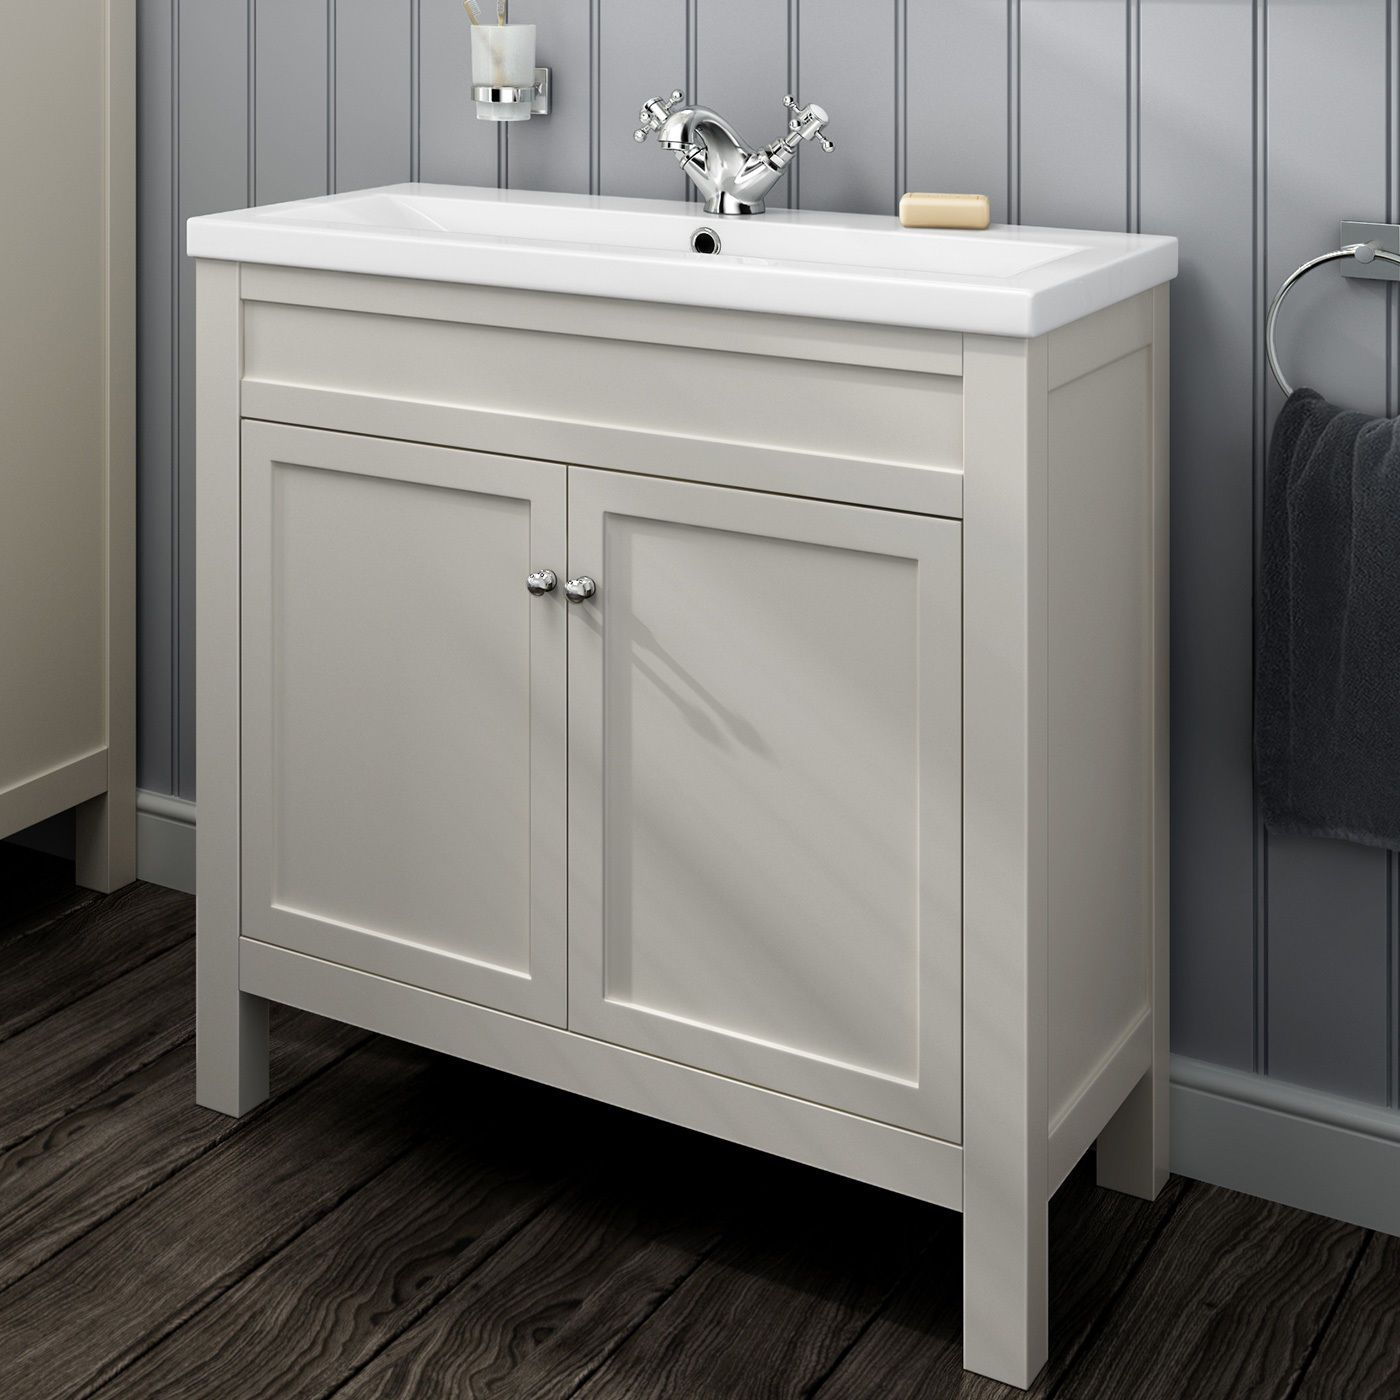 Traditional Bathroom Cabinets Furniture Vanity Unit Sink Basin